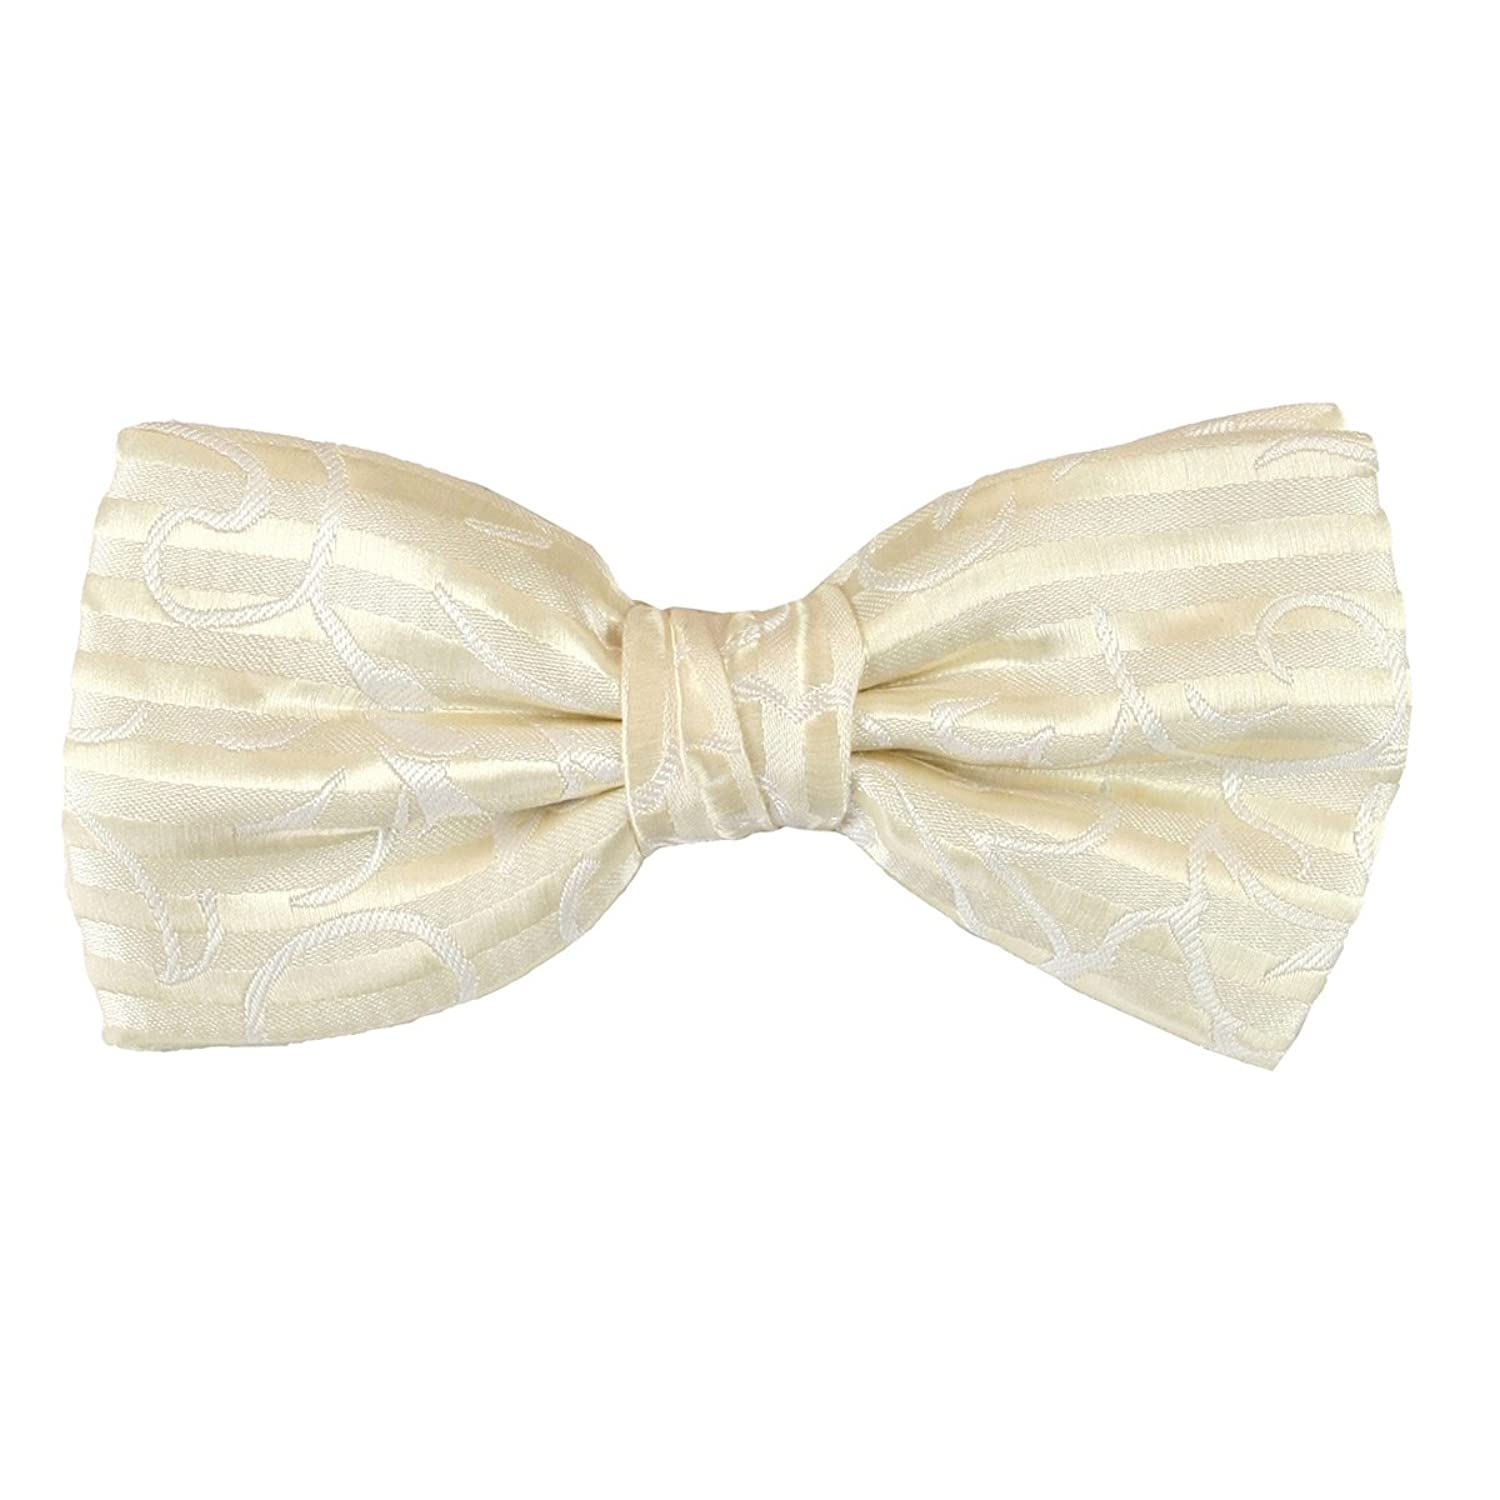 Victorian Men's Tuxedo, Tailcoats, Formalwear Guide Historical Emporium Mens Gaston Bow Tie $9.95 AT vintagedancer.com